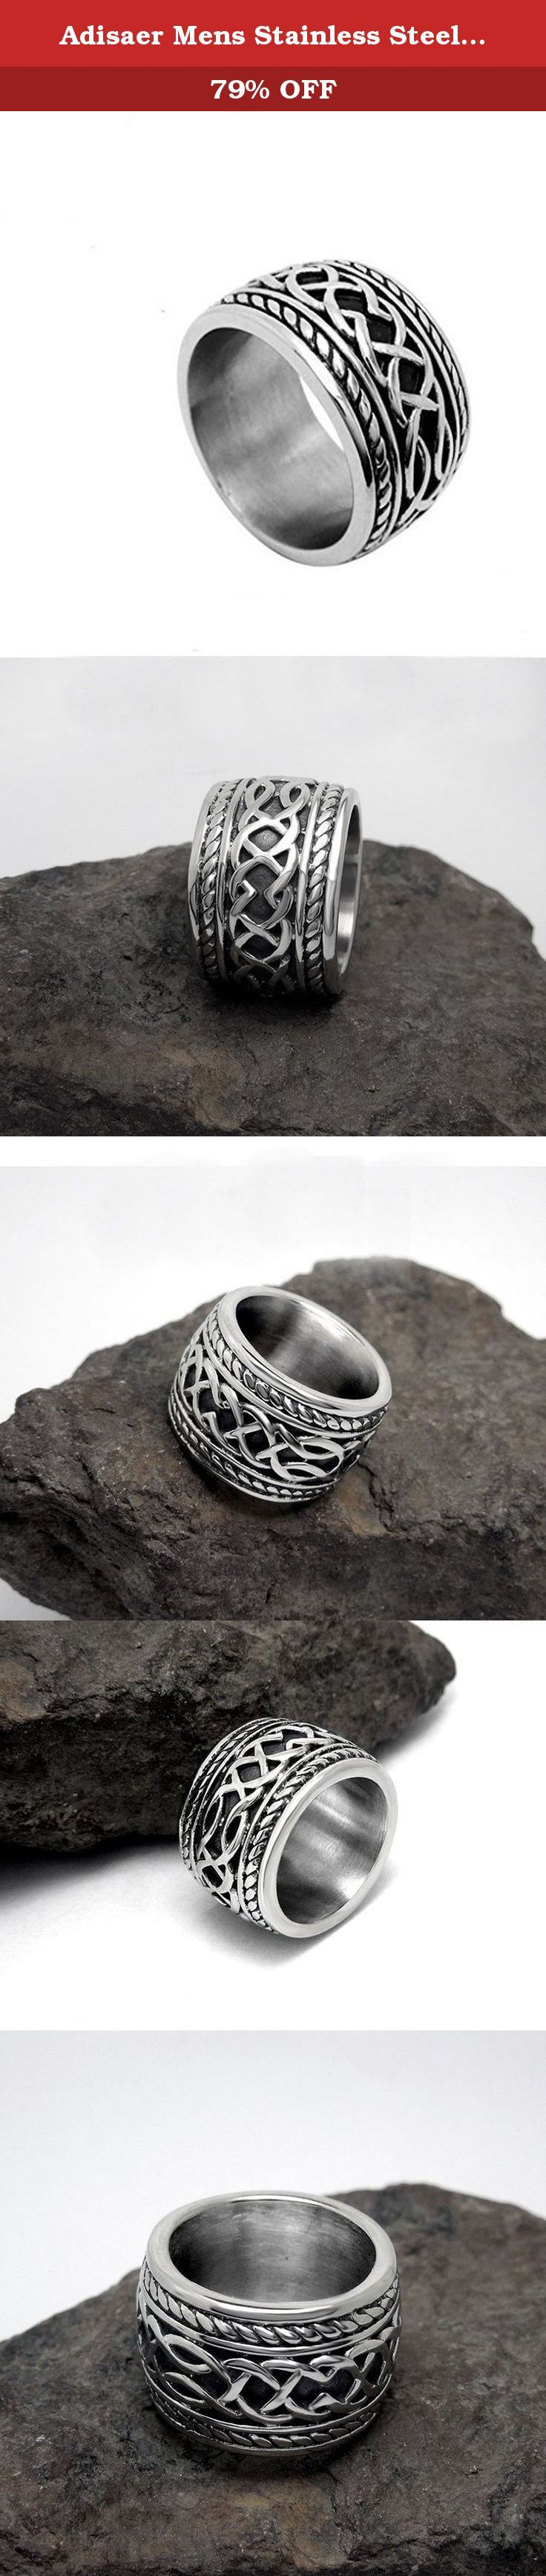 Adisaer Mens Stainless Steel Finger Rings Retro Punk Width 14.3MM Gothic Band Vintage Ring Size 10. ∞ Brand Source ∞ A: At here waiting for you D: Doesn't mind how long it takes I : I love you S: So I do A: A whole heart for you E: Envisions the whole of you R: Run with you in the future Adisaer is not just jewelry, but sweet promises. Life is like a journey, Adisaer apply to join your trip sincerely and hope can become your close partner. She would love to accompany with you in every...